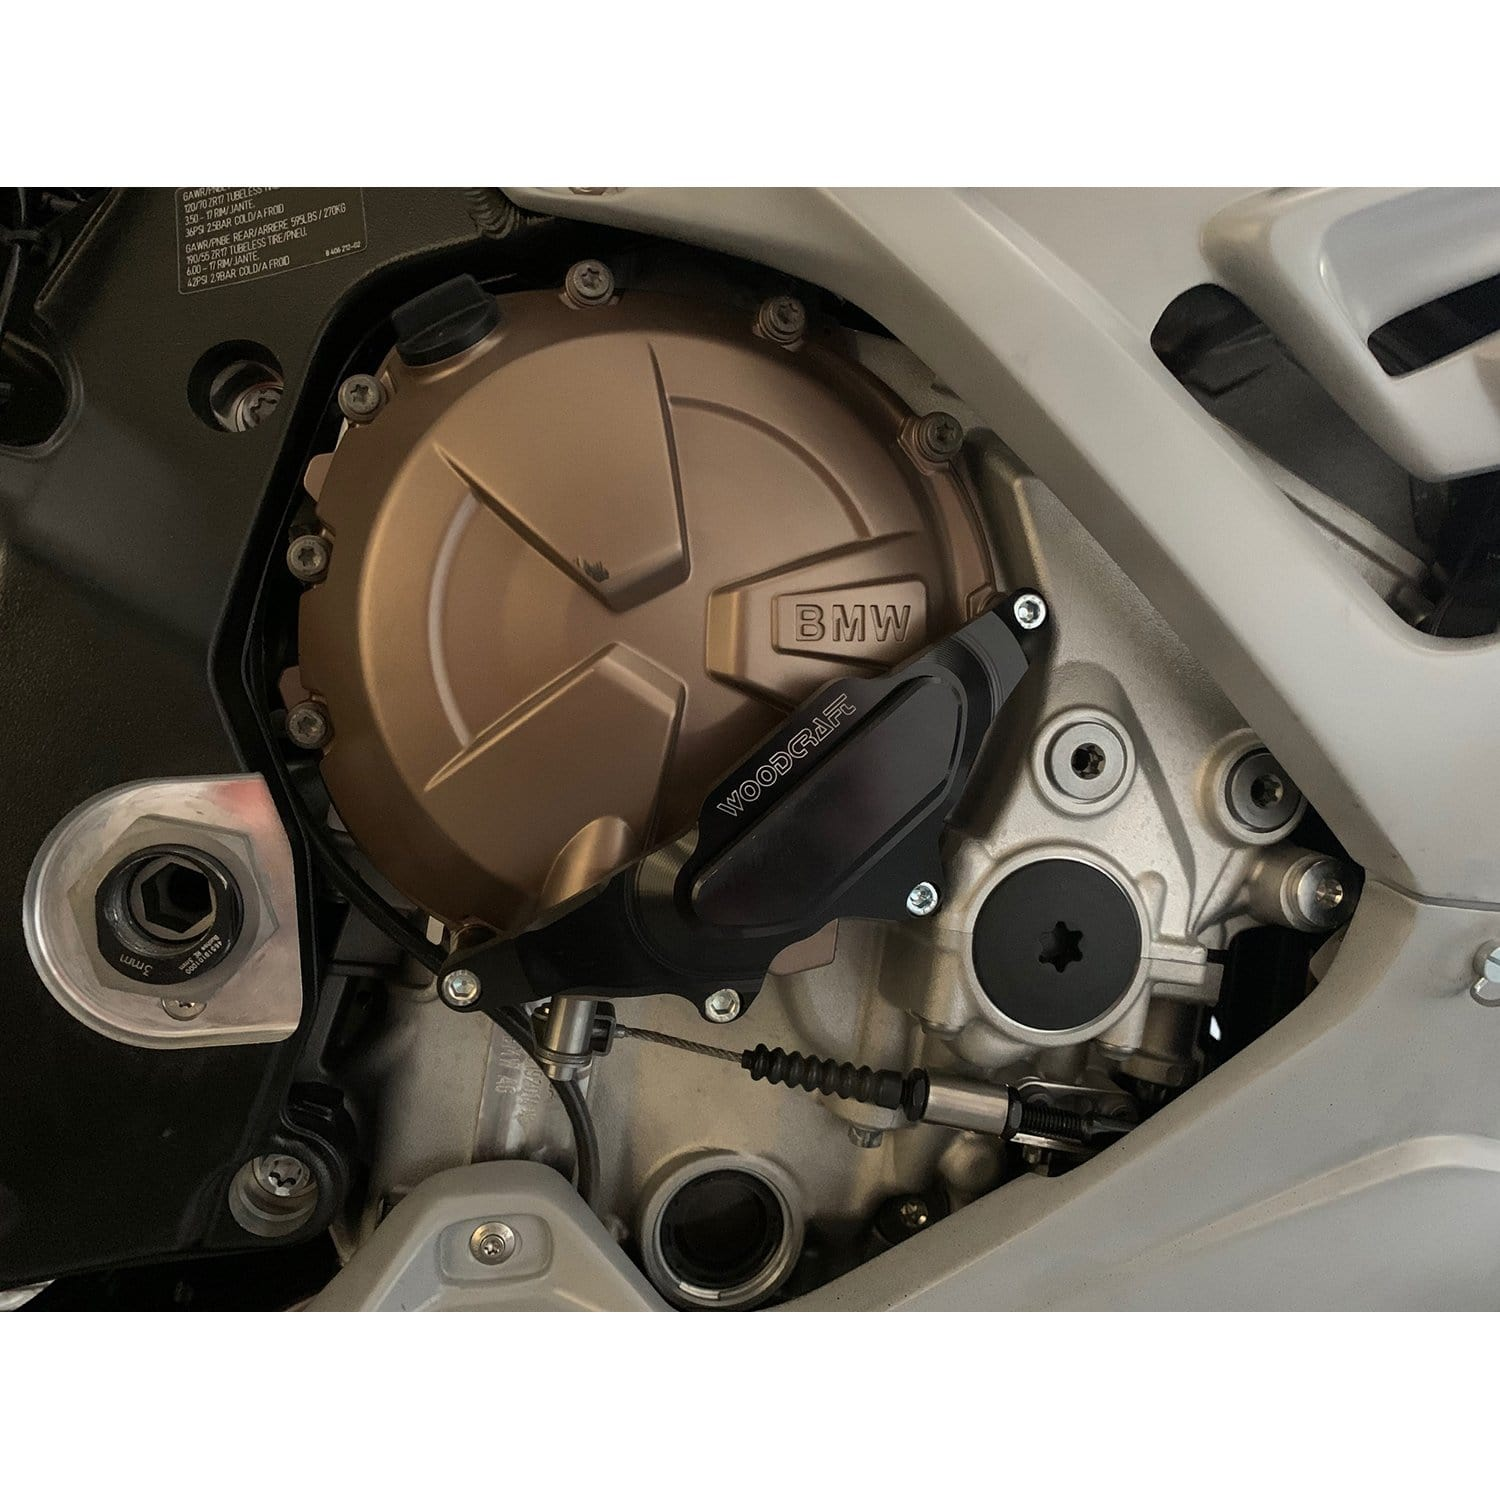 2020 BMW S1000RR Clutch Cover Protector